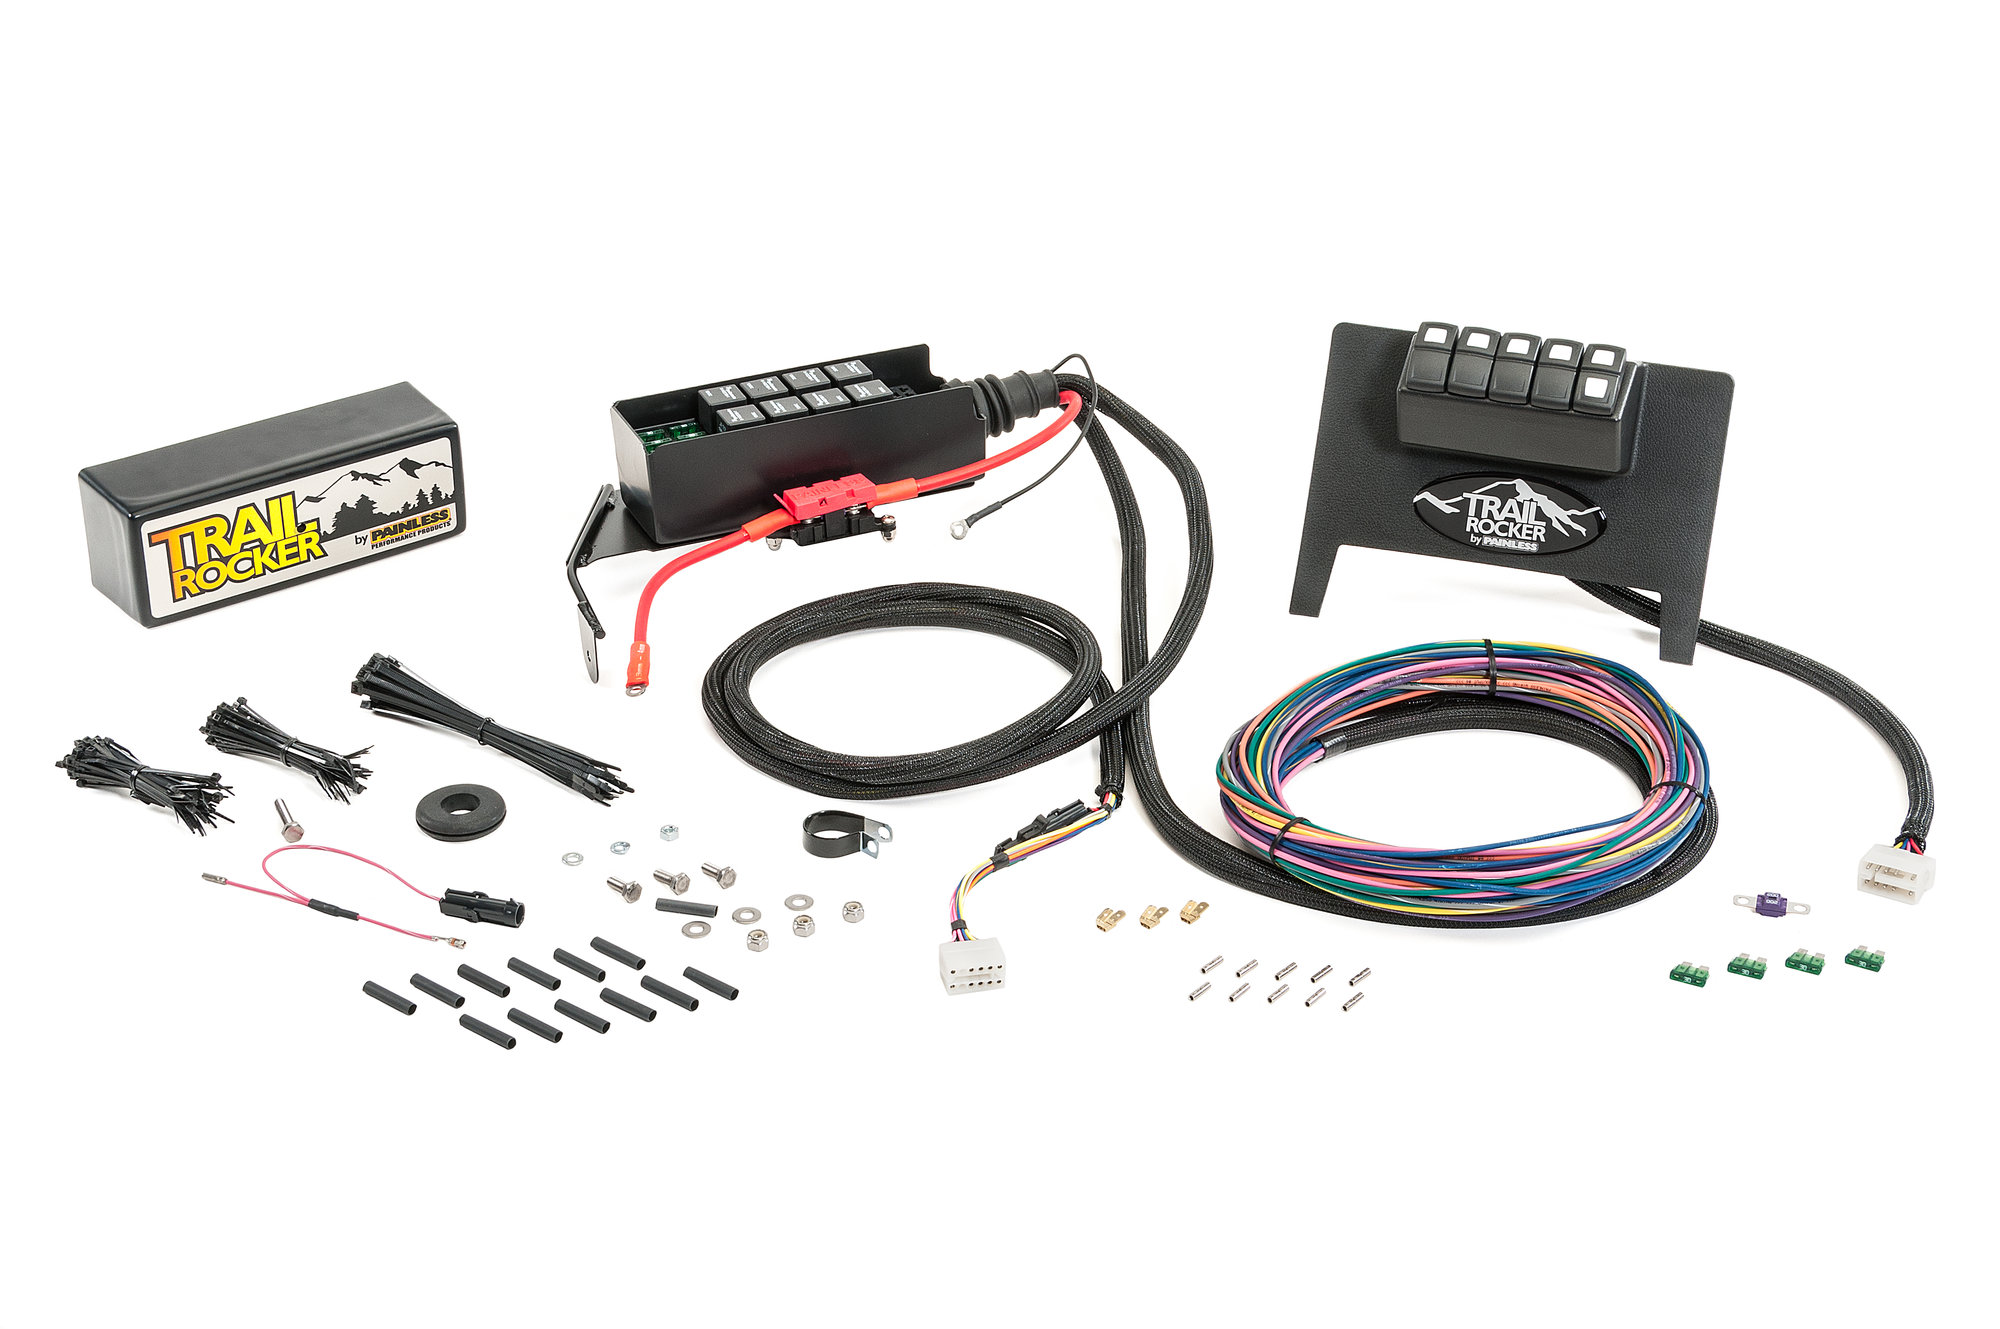 hight resolution of painless wiring 57001 trail rocker for 11 18 jeep wrangler jk with automatic transmission